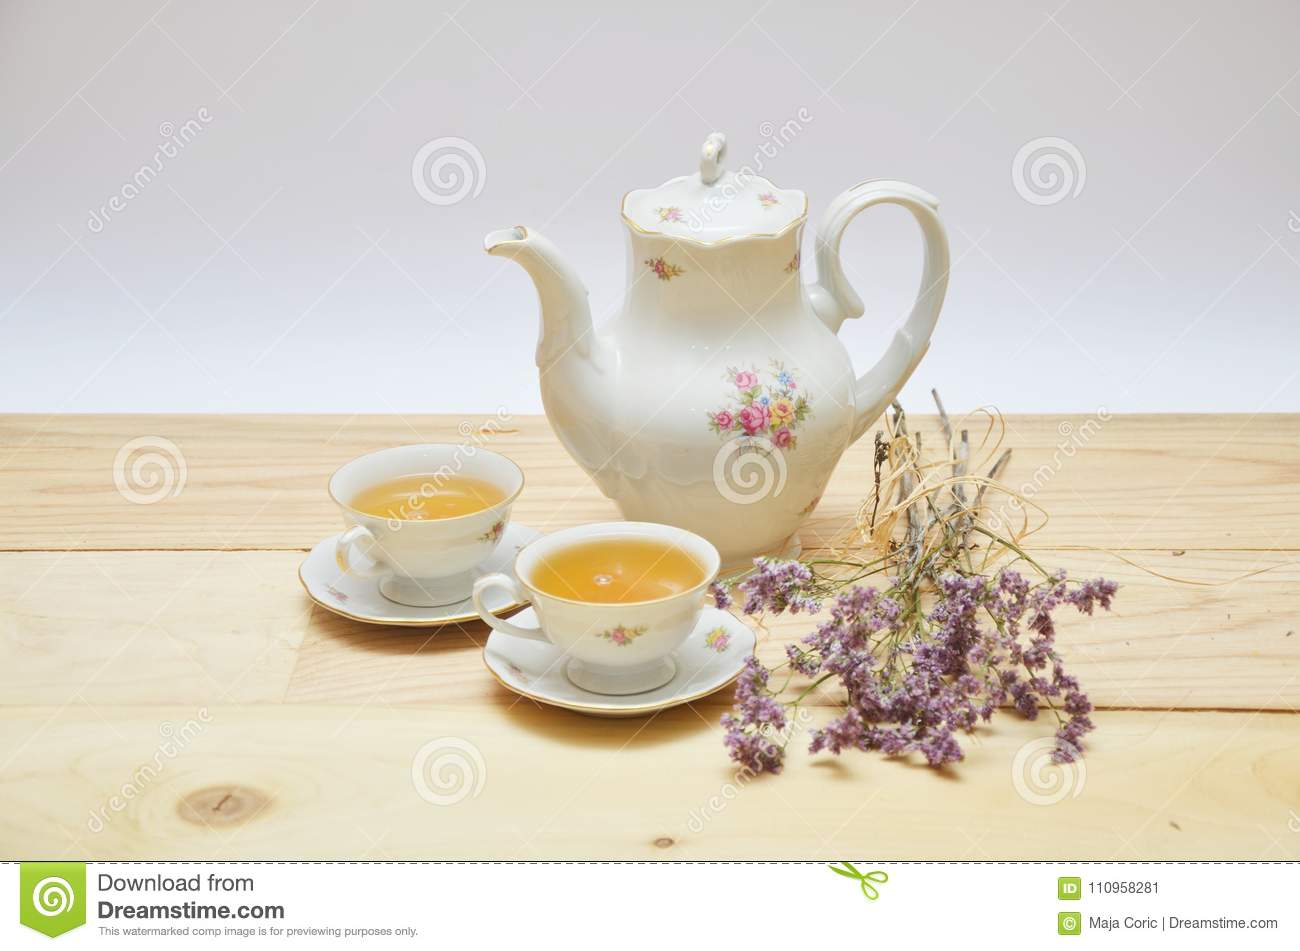 Tea pot and two cups on wooden table on white